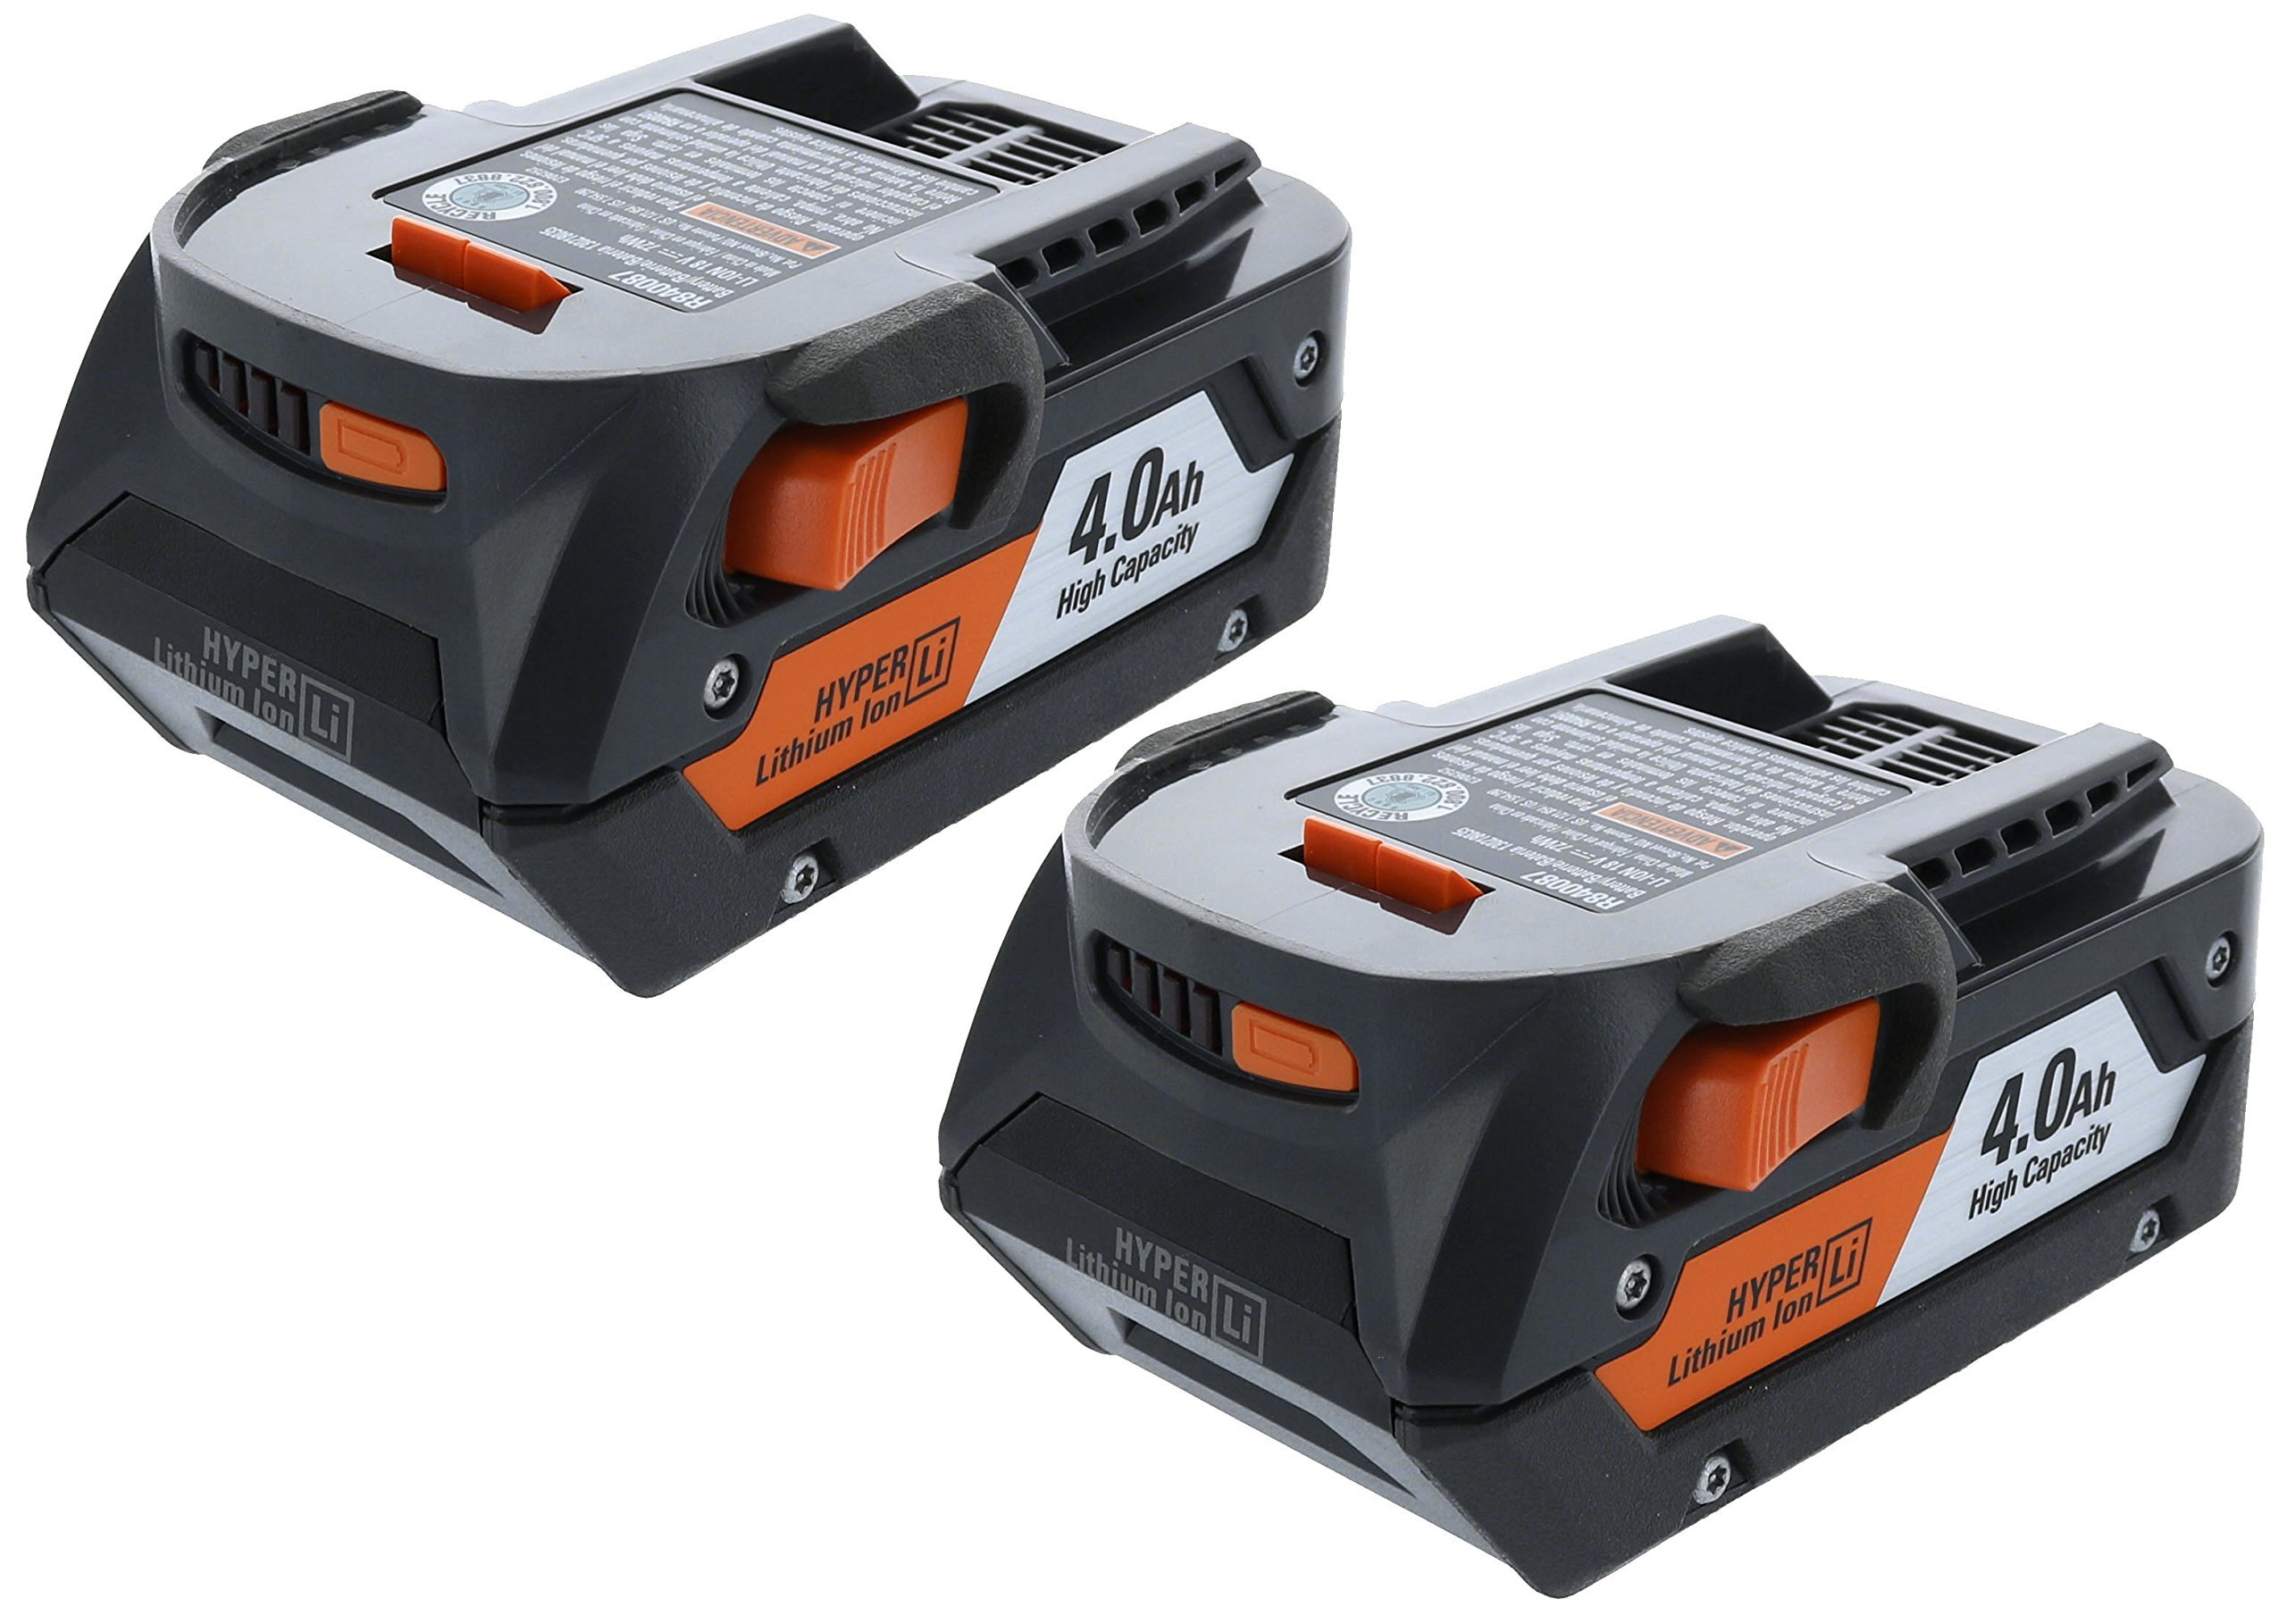 Ridgid AC840087P 18 Volt 4 Amp Hour Lithium-Ion Battery w/ Onboard Fuel Gauge (2-Pack of R840087 Battery) (Certified Refurbished)